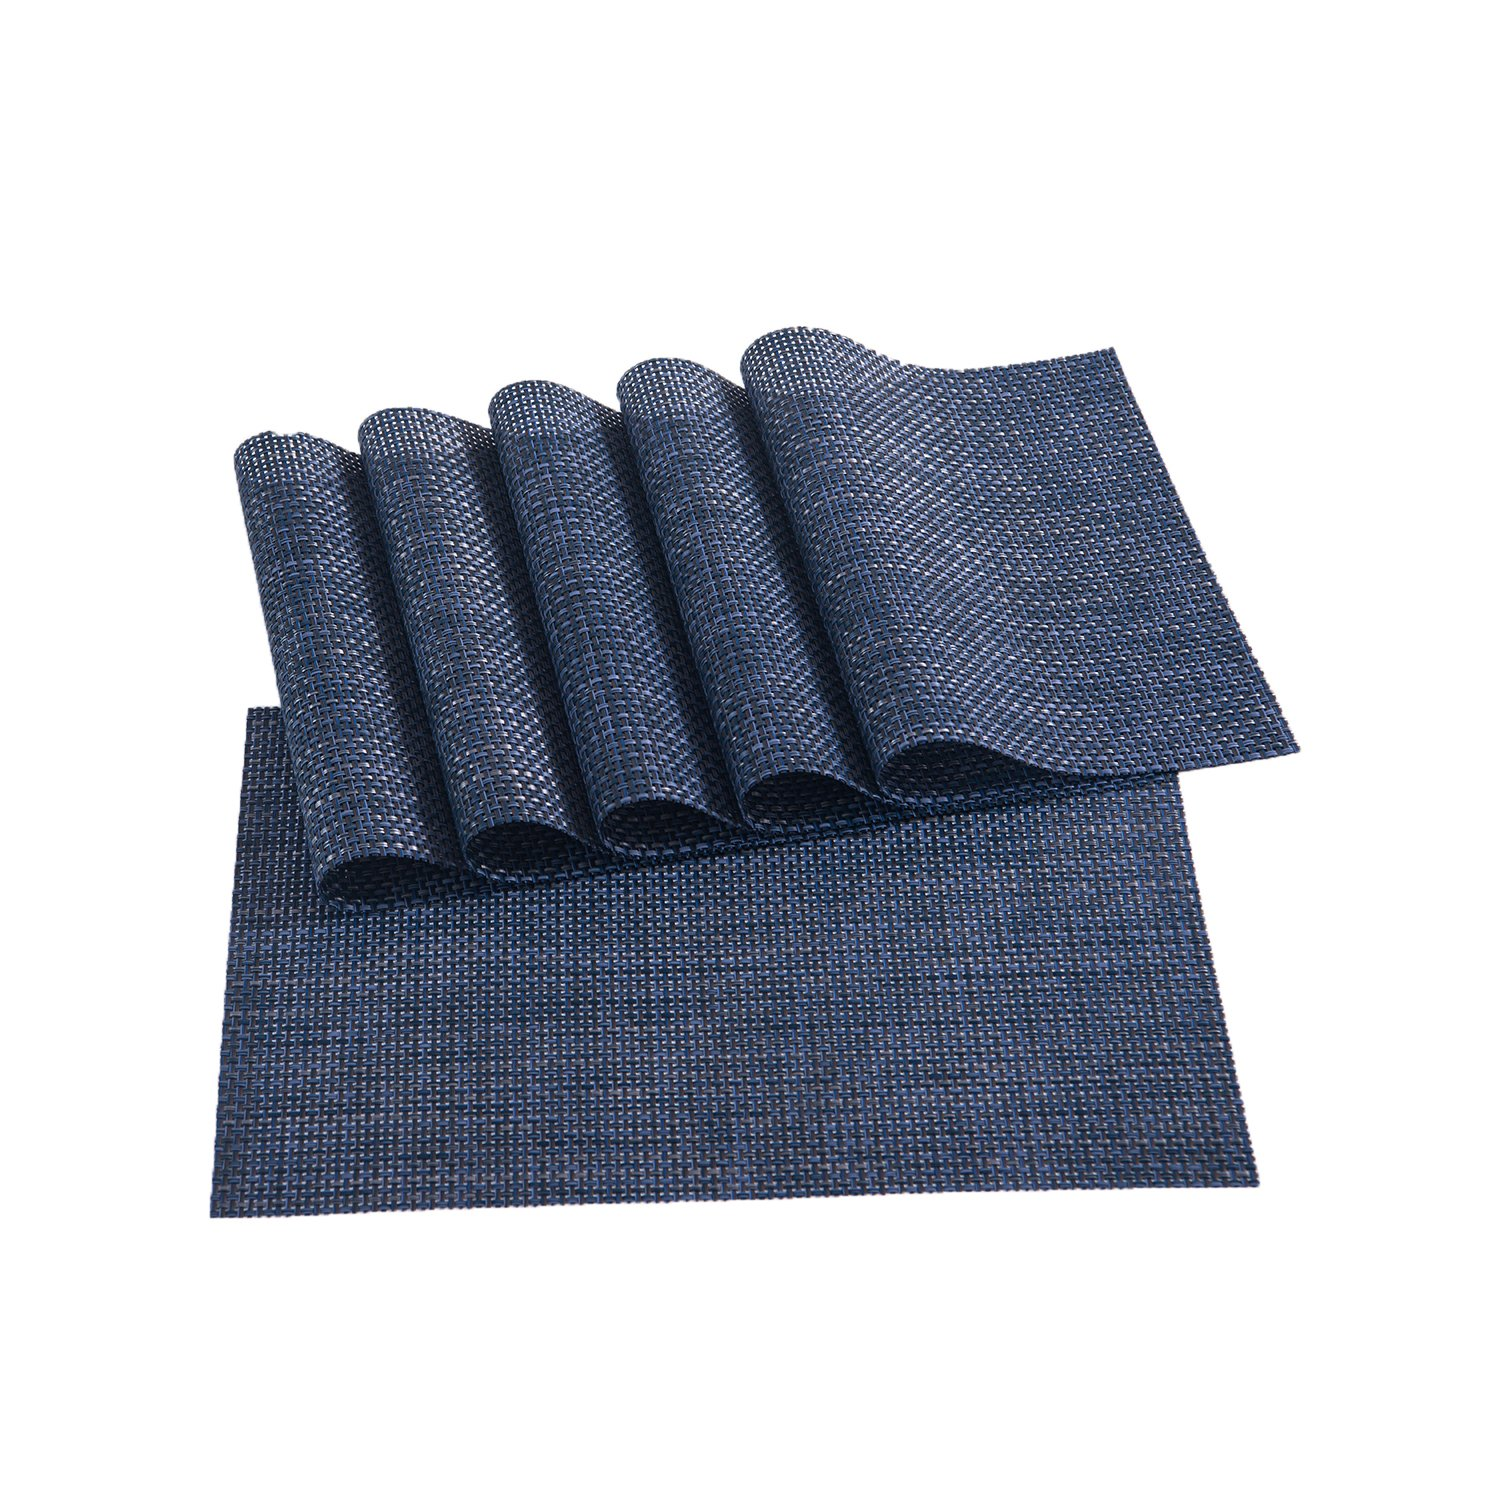 Sunshine Fashion Inc Placemats,Placemats Dining Table,Heat-Resistant Placemats, Stain Resistant Washable PVC Table Mats,Kitchen Table mats,Sets 6 (1:Navy)